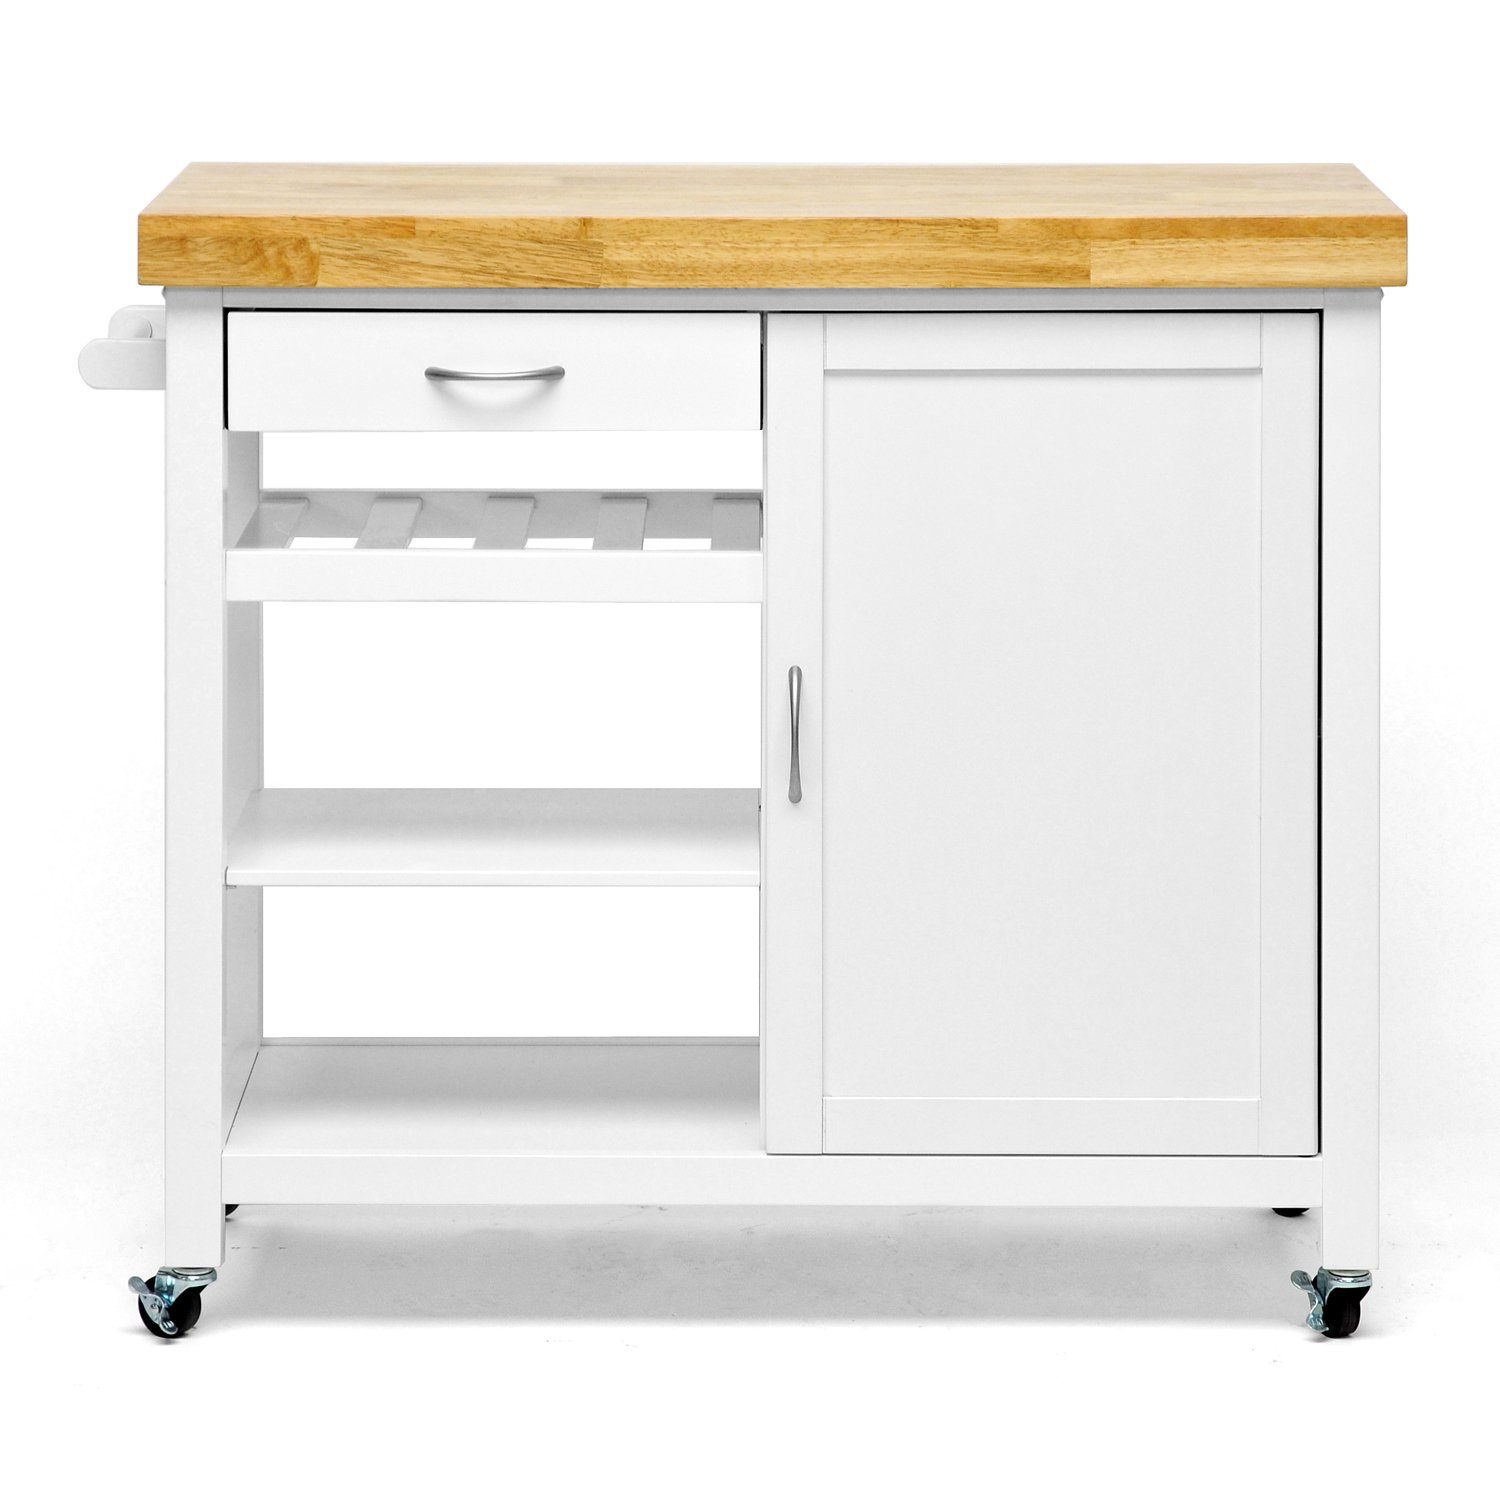 amazoncom baxton studio denver modern kitchen cartisland with butcher block top white kitchen dining - Kitchen Carts